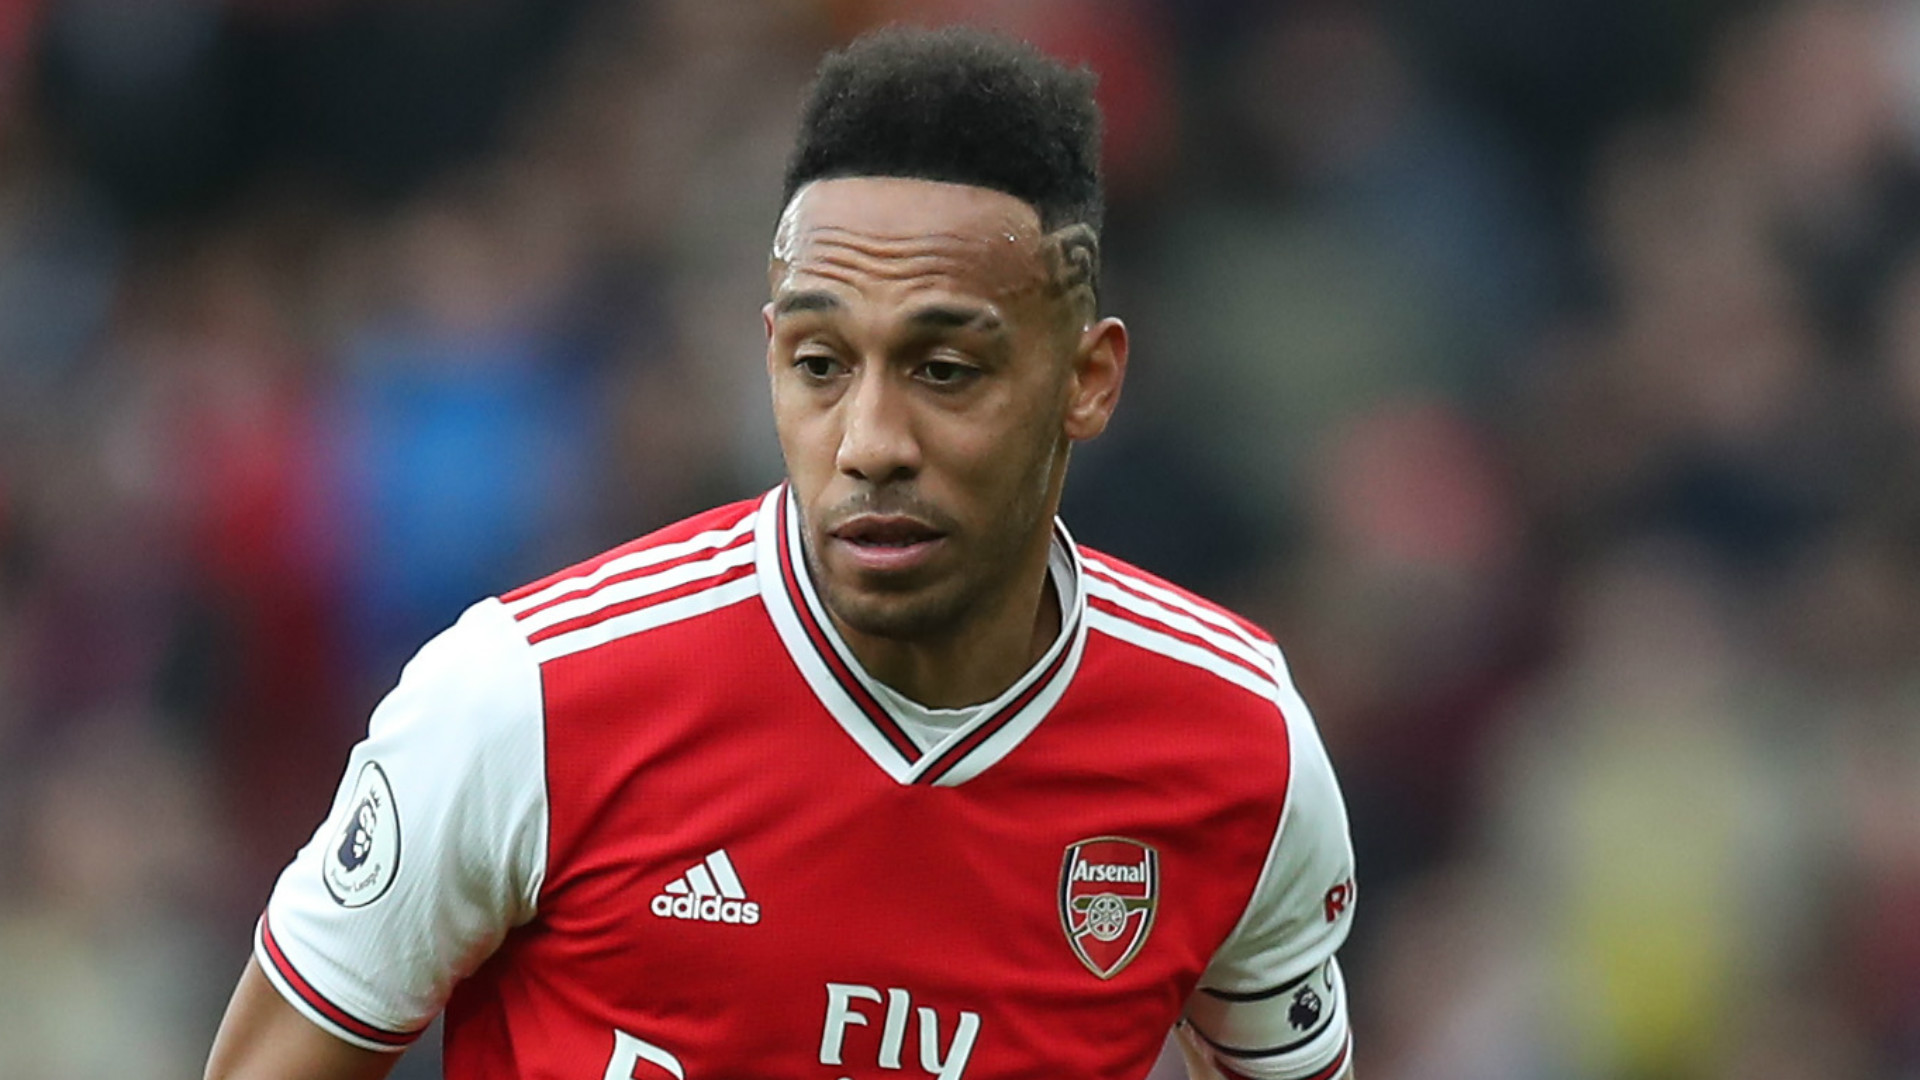 Michael Owen: The two Arsenal starlets who could emulate Pierre-Emerick Aubameyang